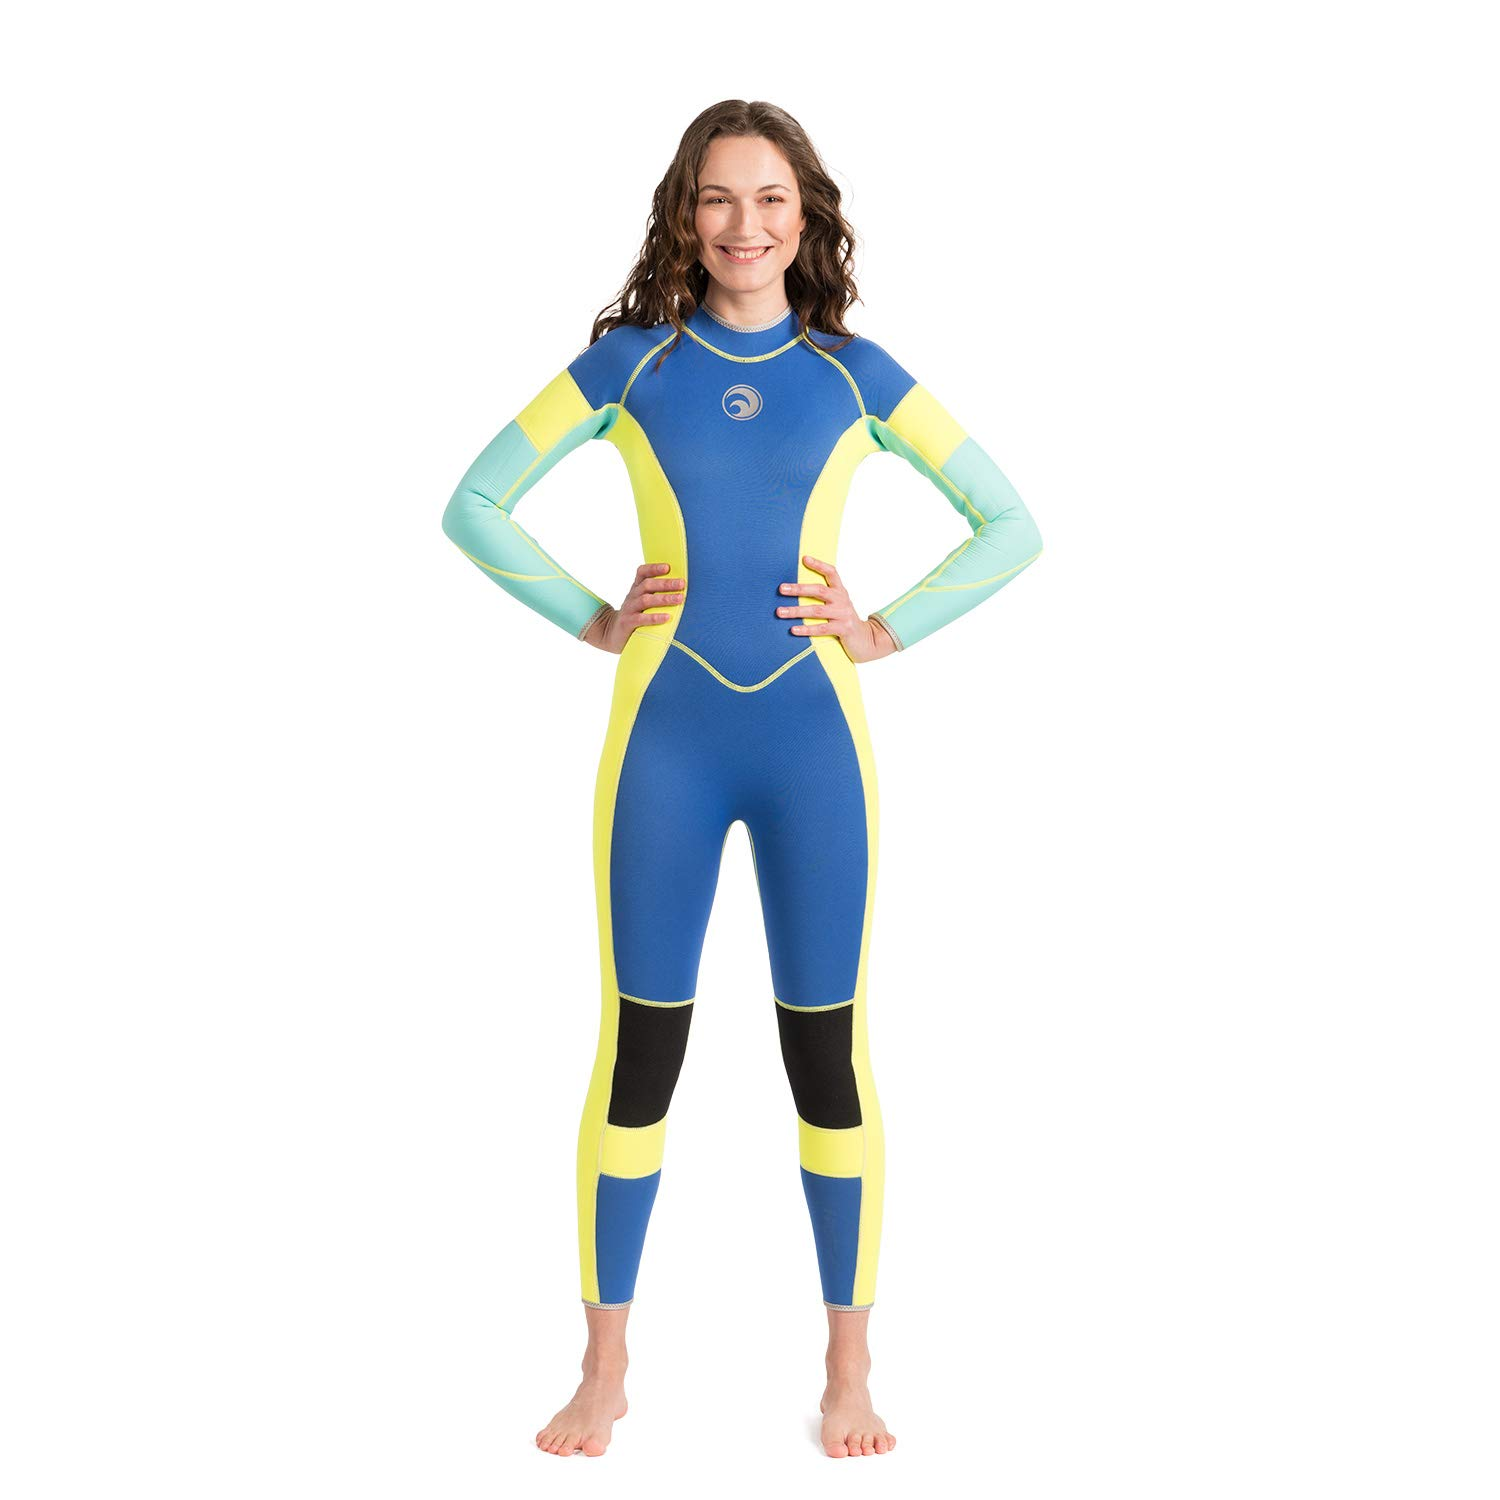 Scubadonkey RAD 3mm Neoprene Wetsuit for Women Medium by Scubadonkey